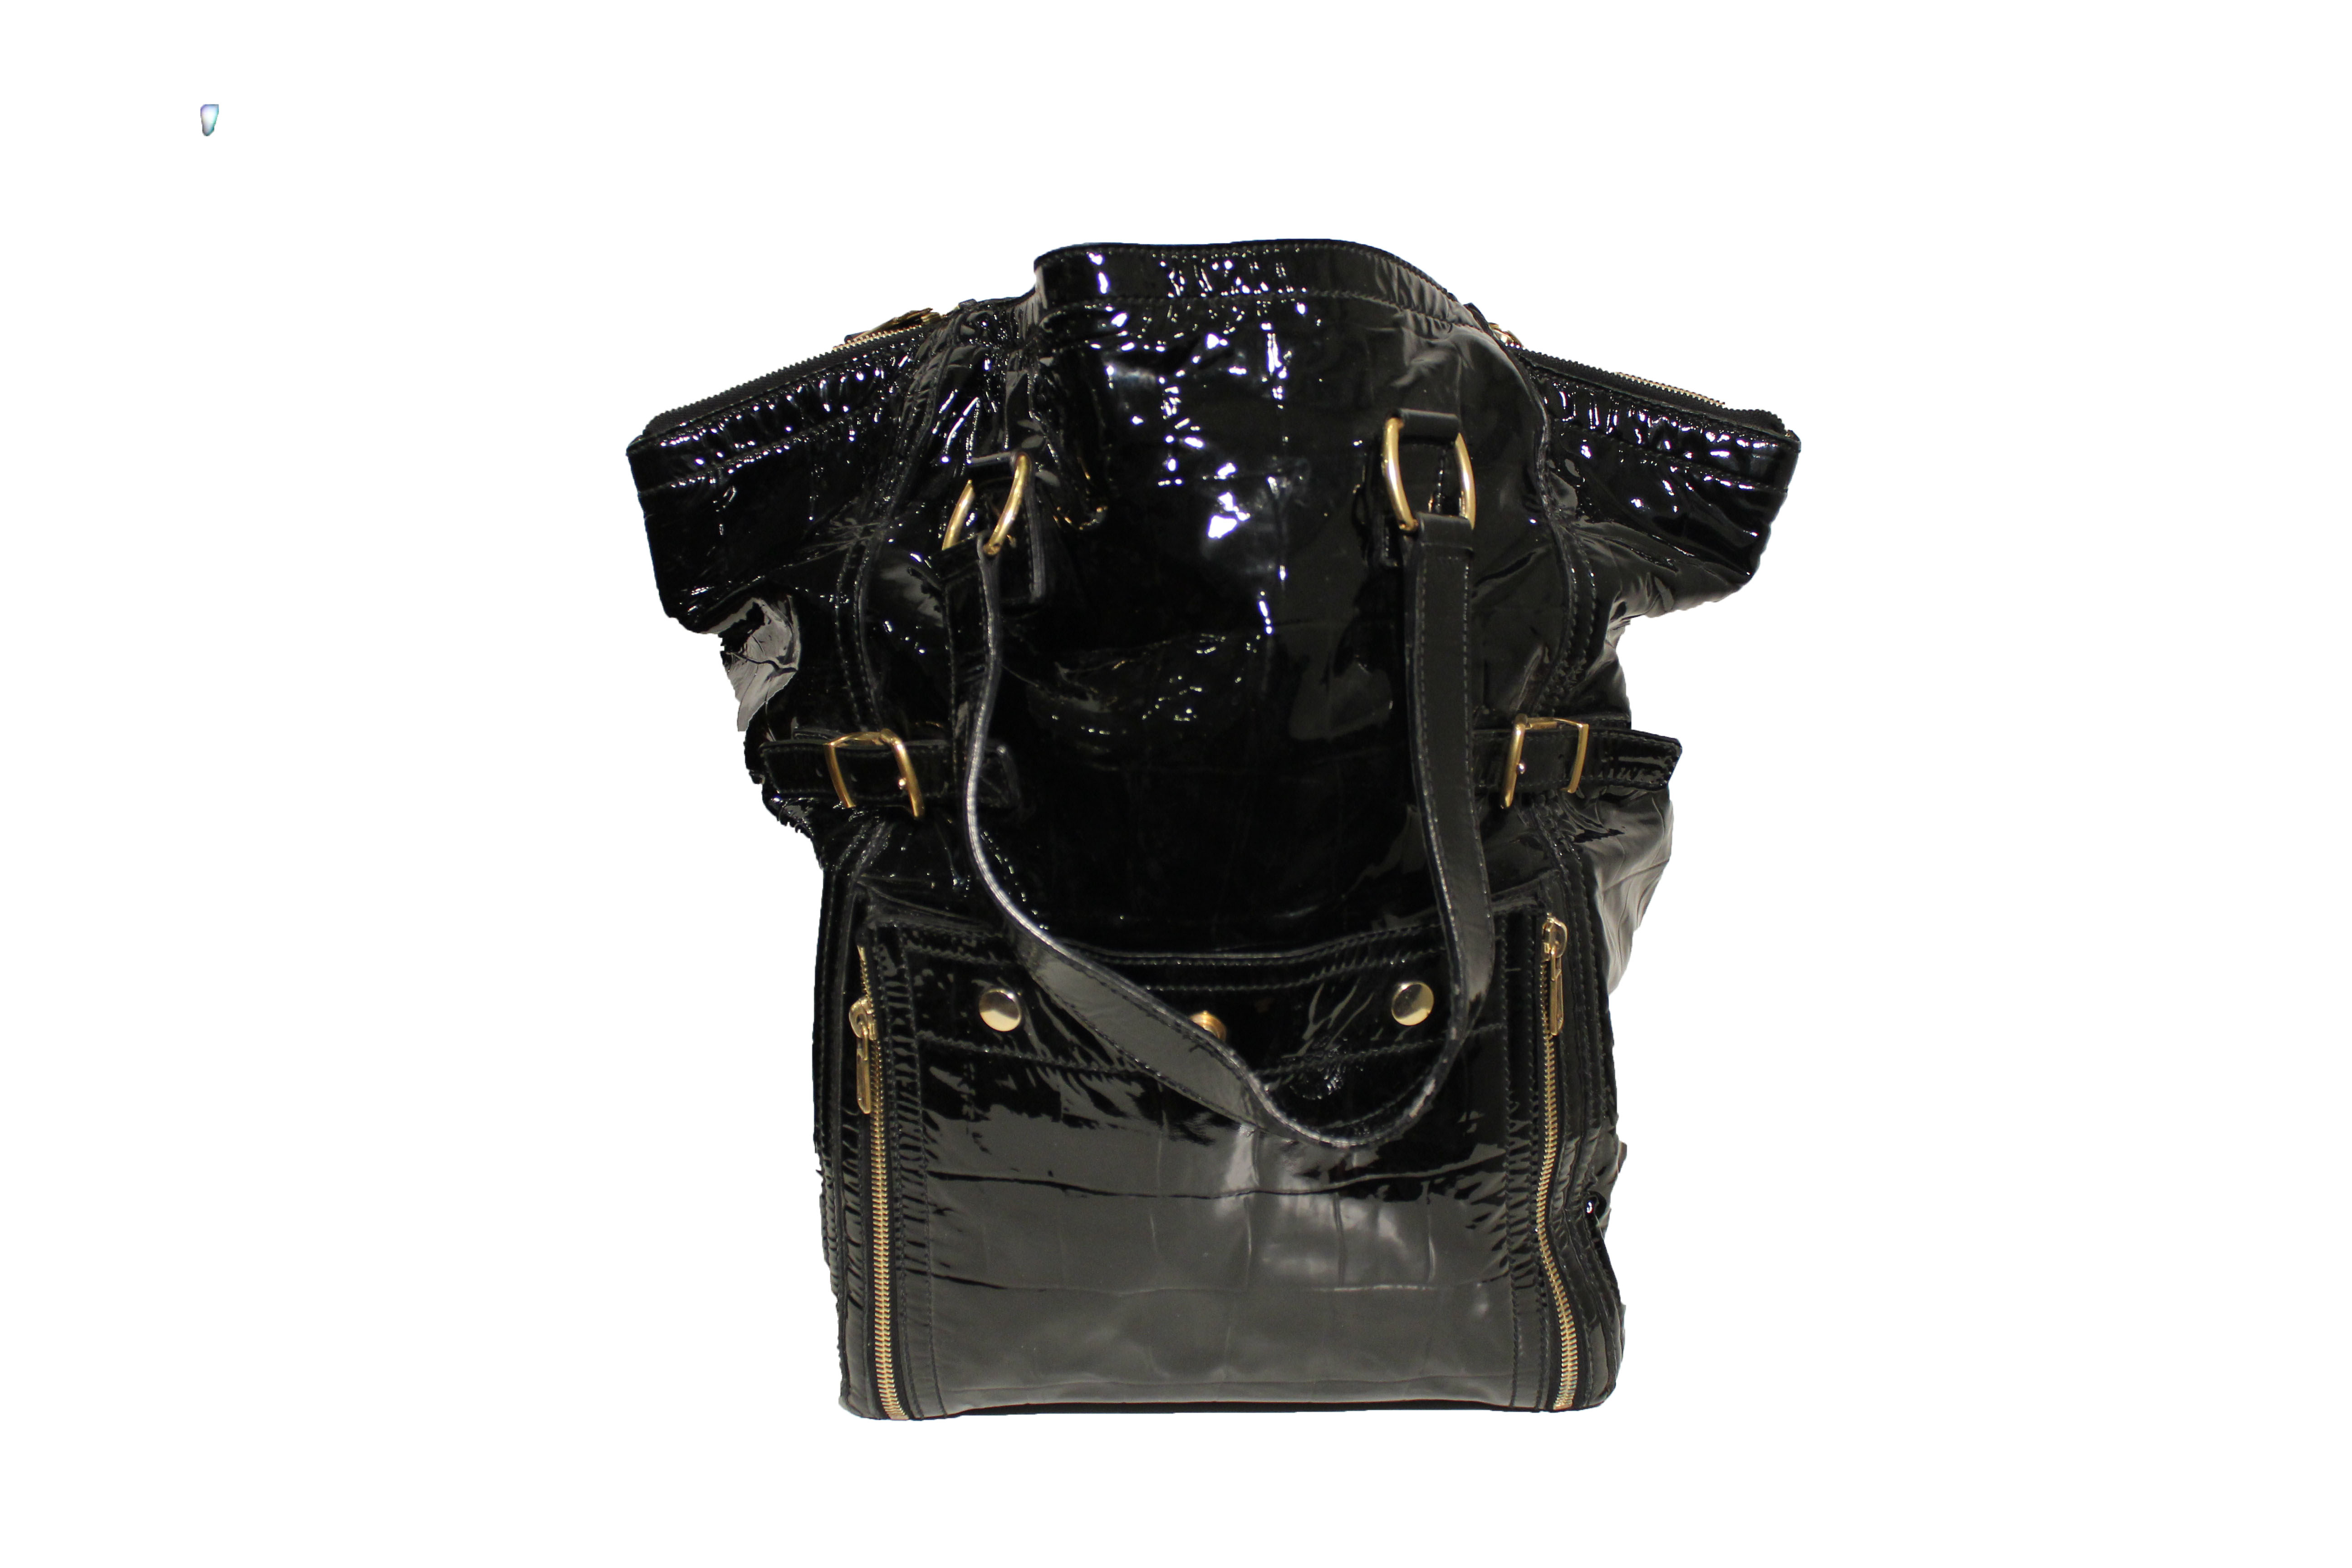 ysl patent leather handbag downtown